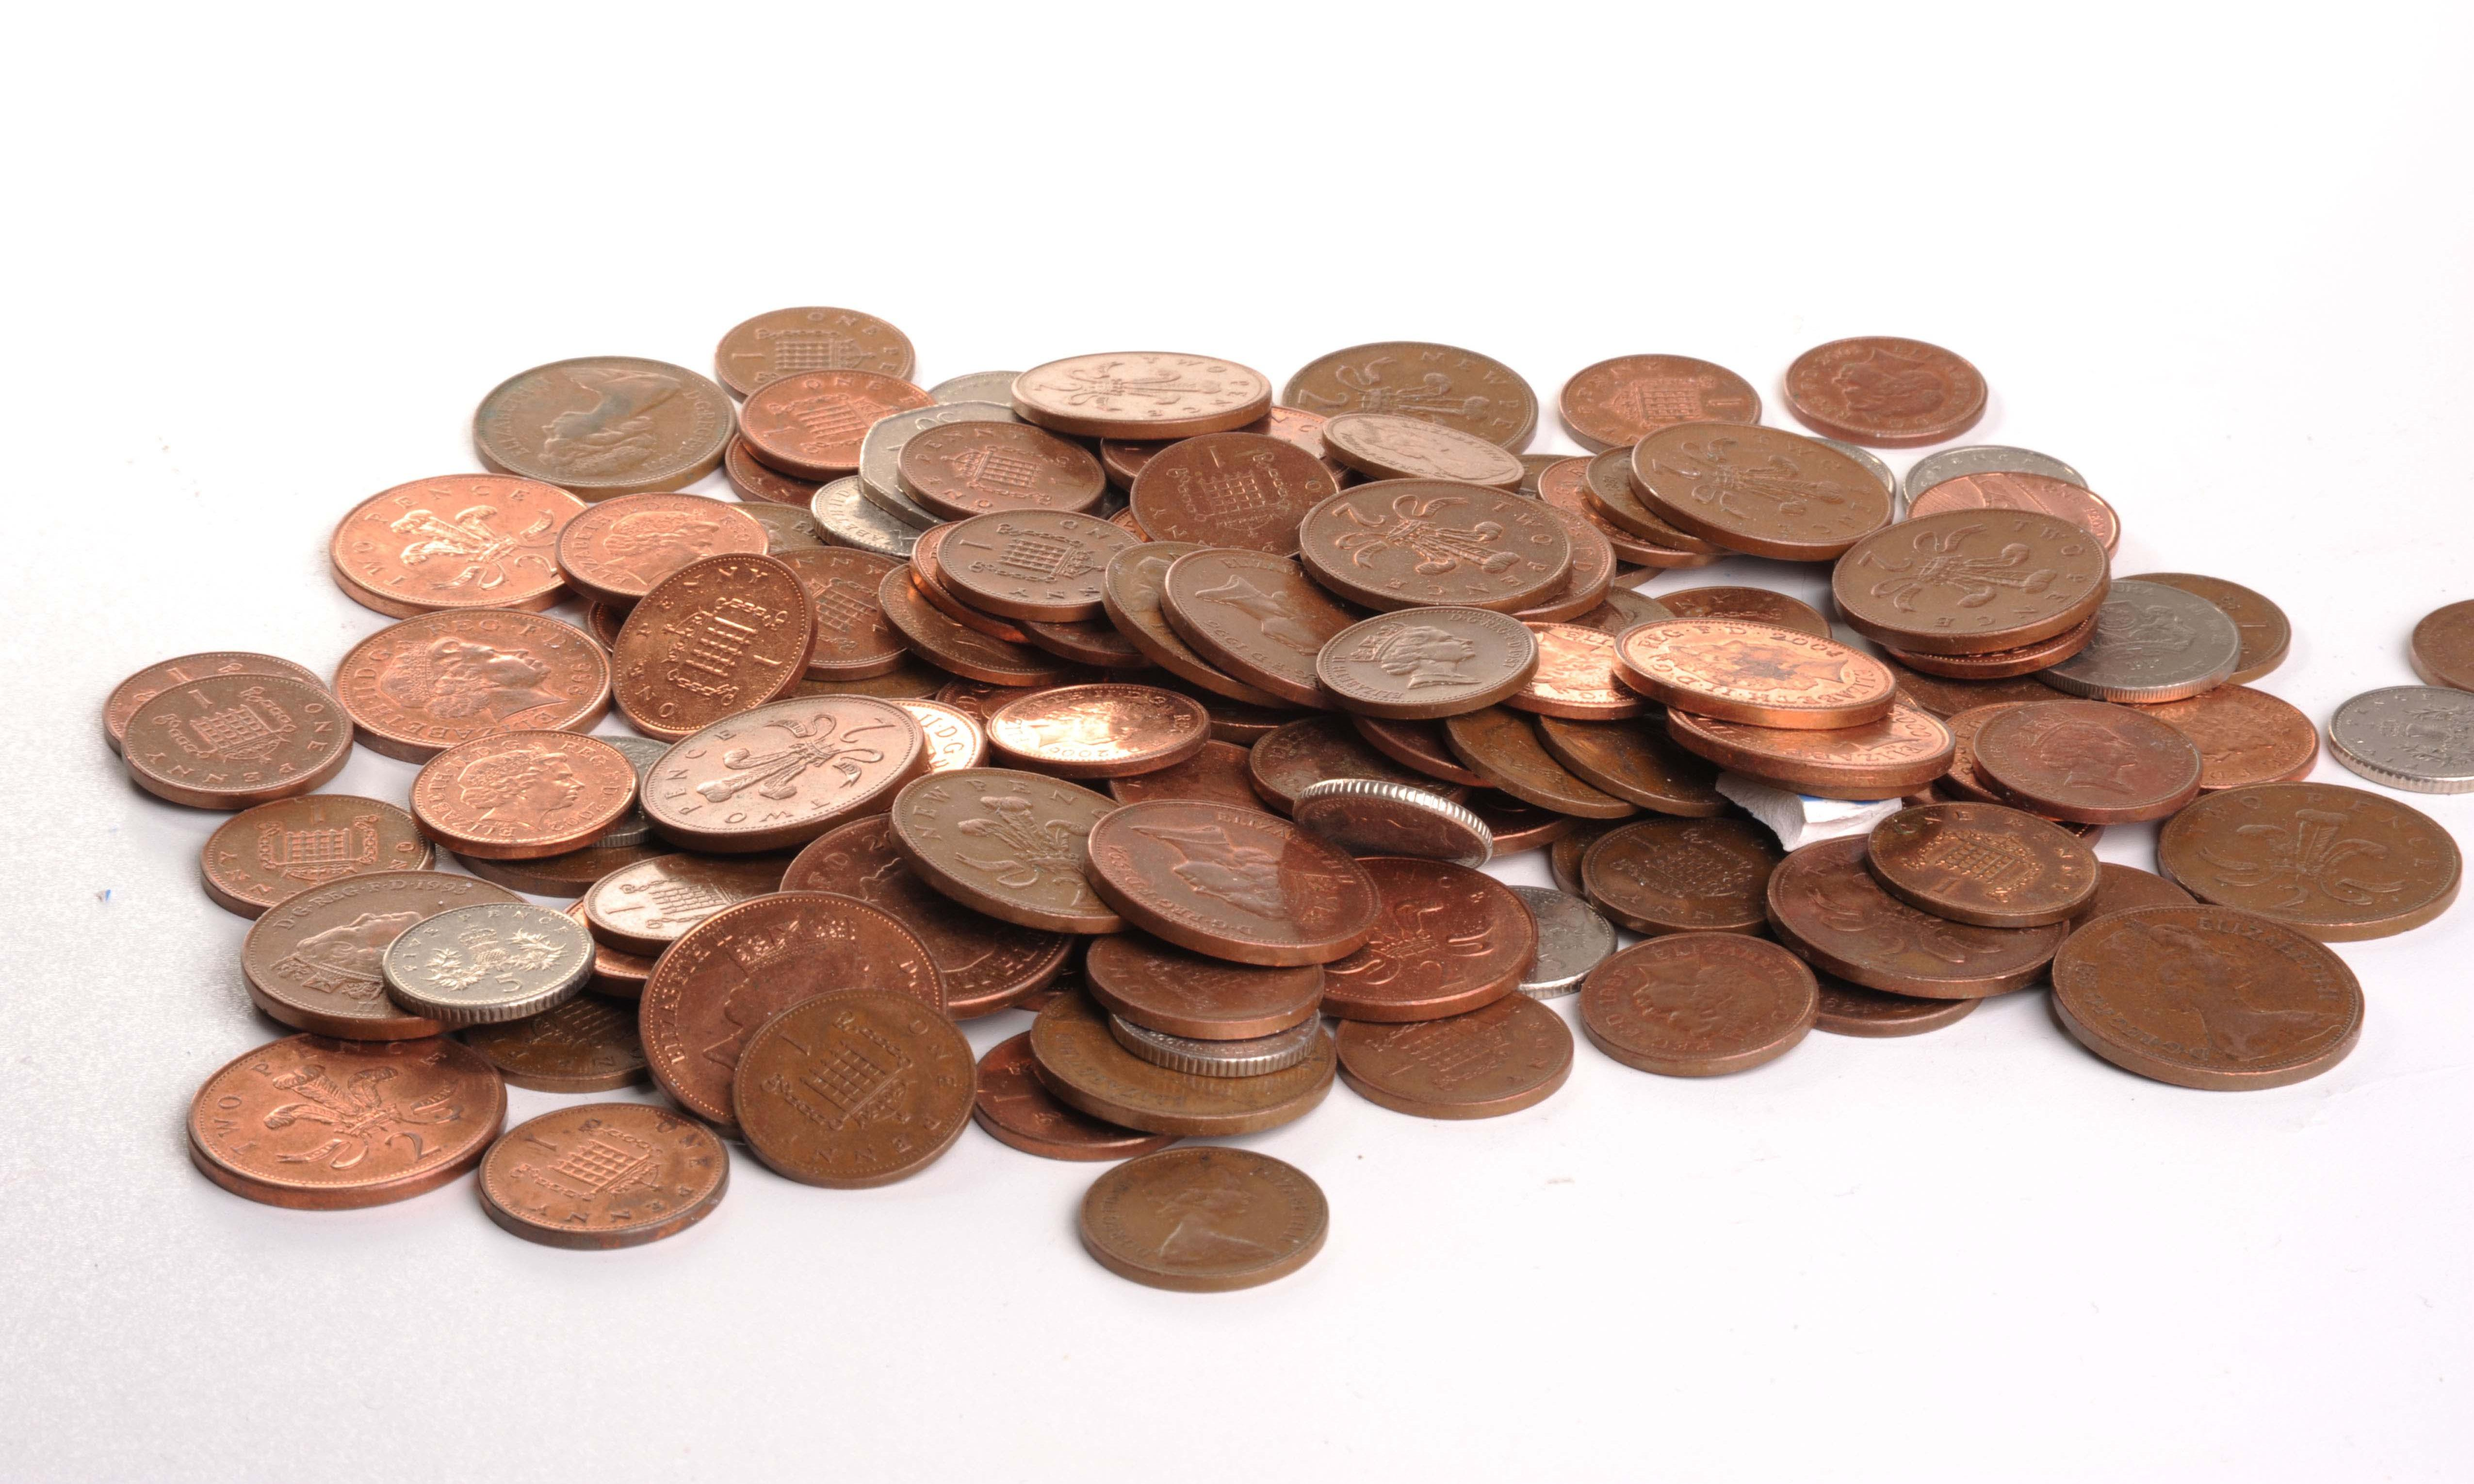 The Guardian view on small change: take care of the pennies